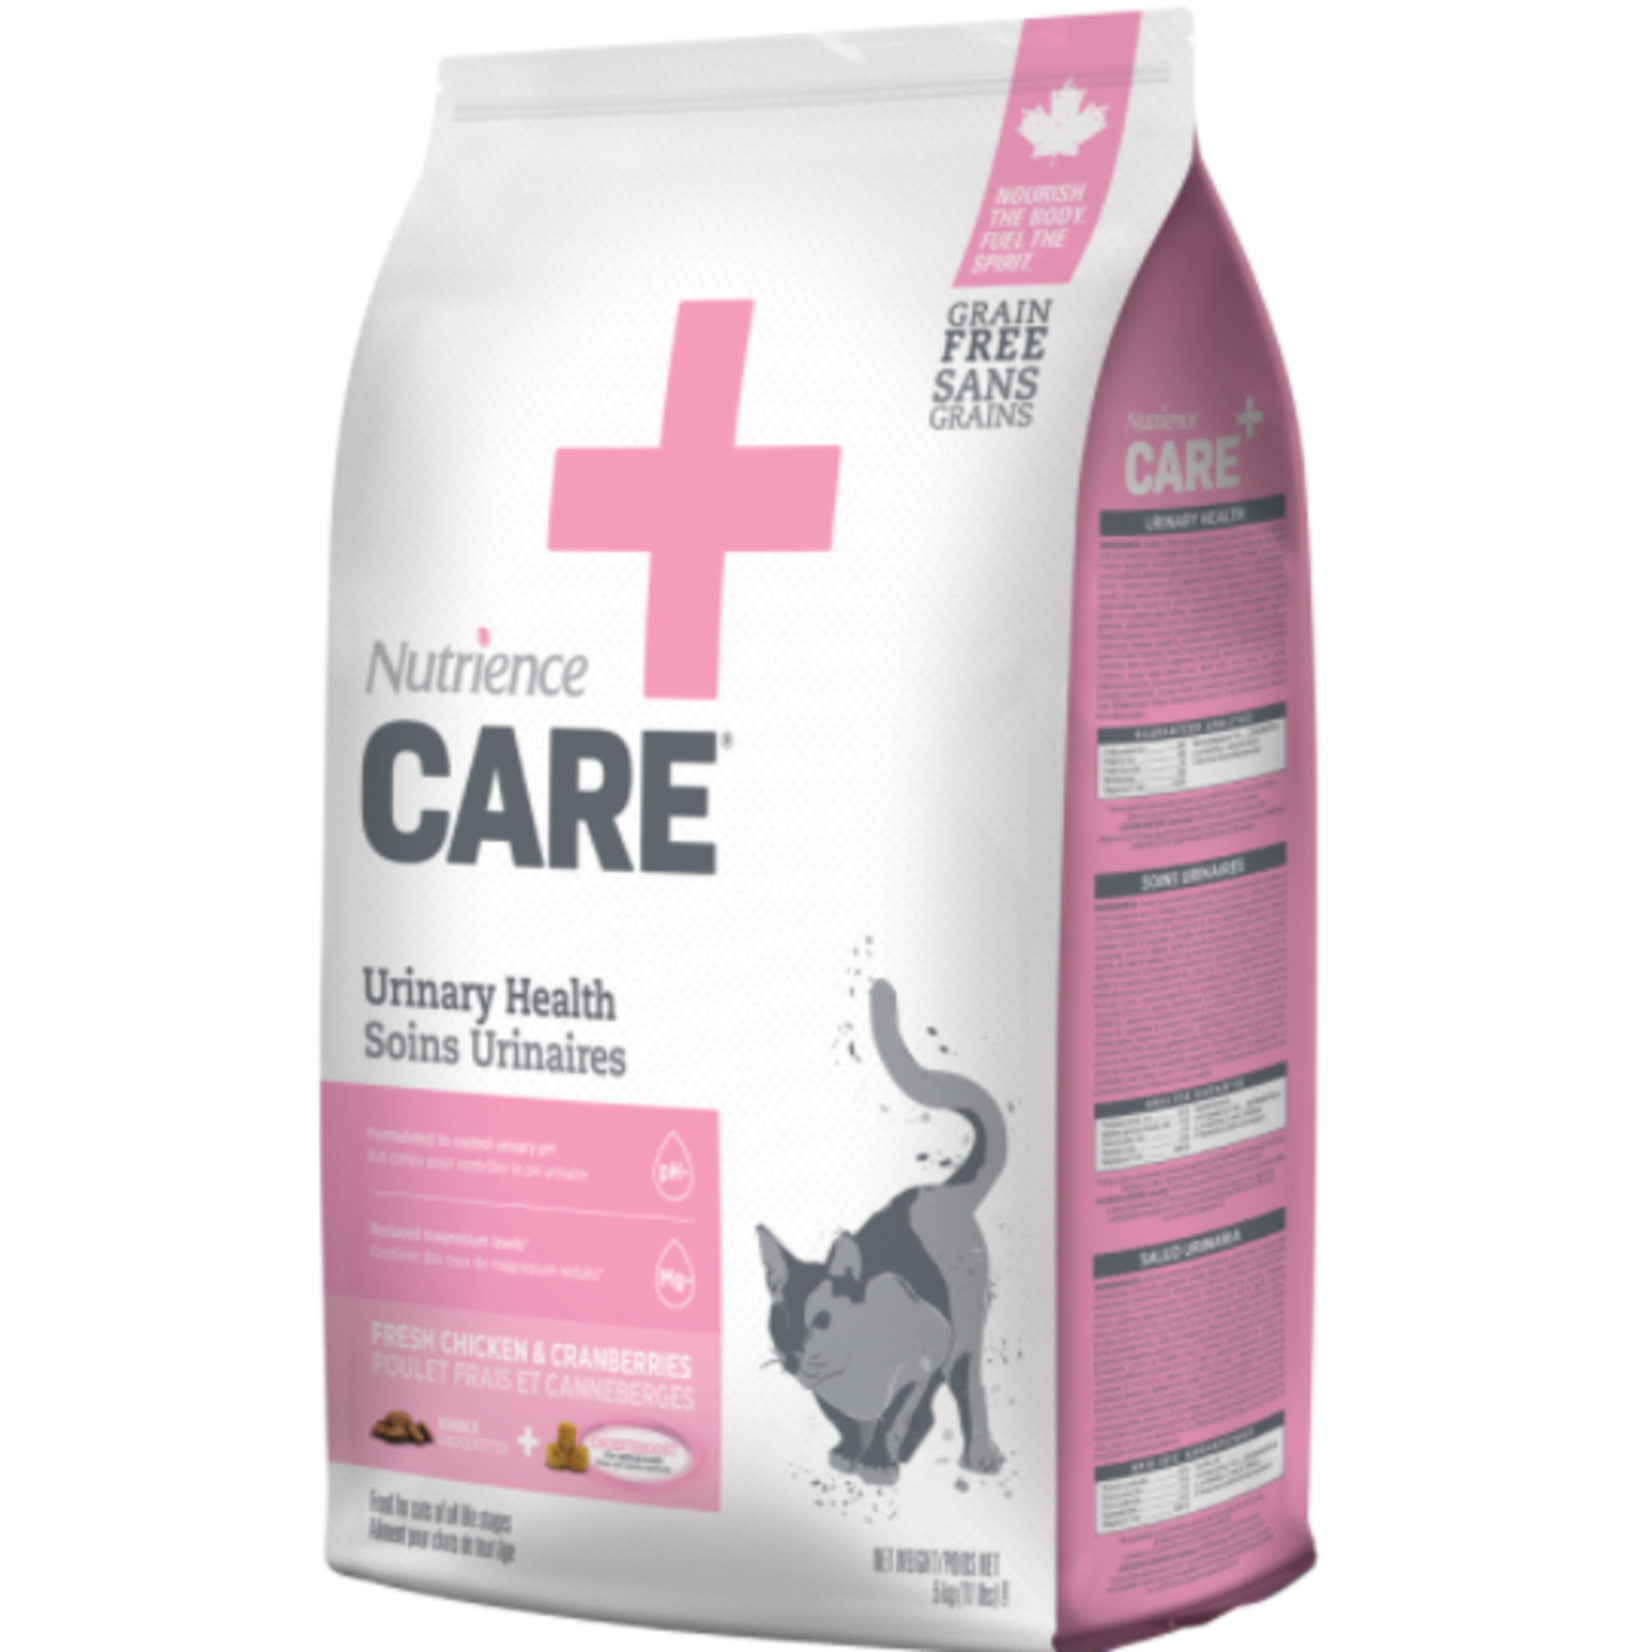 nutrience Care Urinary Health for Cats - 5 kg (11 lbs)-Dry Food